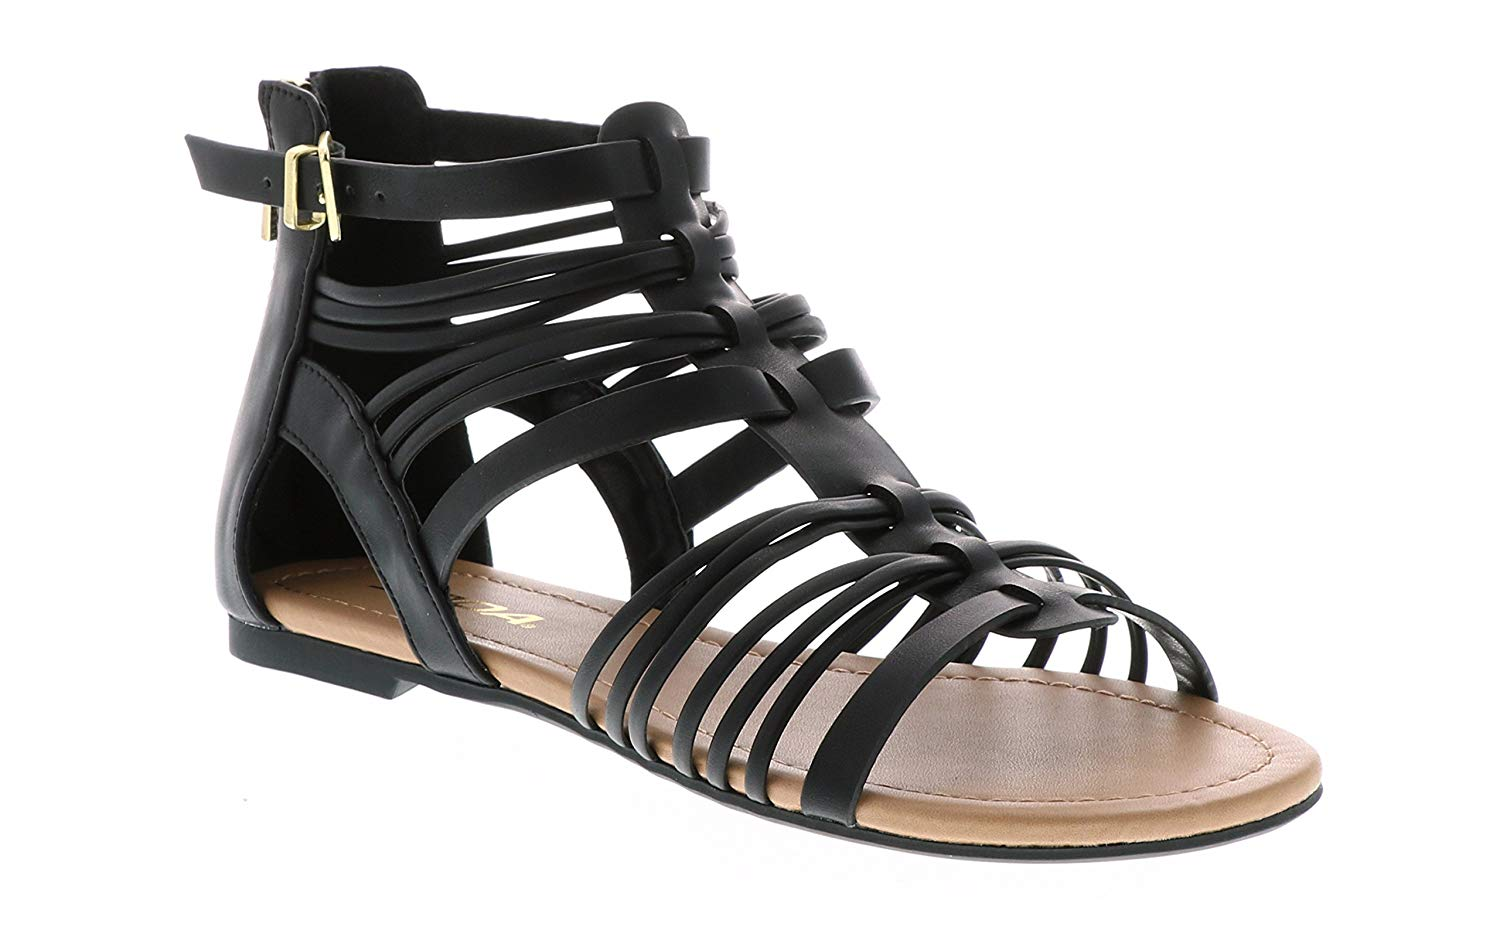 d1e82245371 Buy Soda Women  39 s Gladiator Inspired Strappy Open Toe Flat Sandals  Embellishment Straps Braid Head in Leather MVE Shoes in Cheap Price on  m.alibaba.com